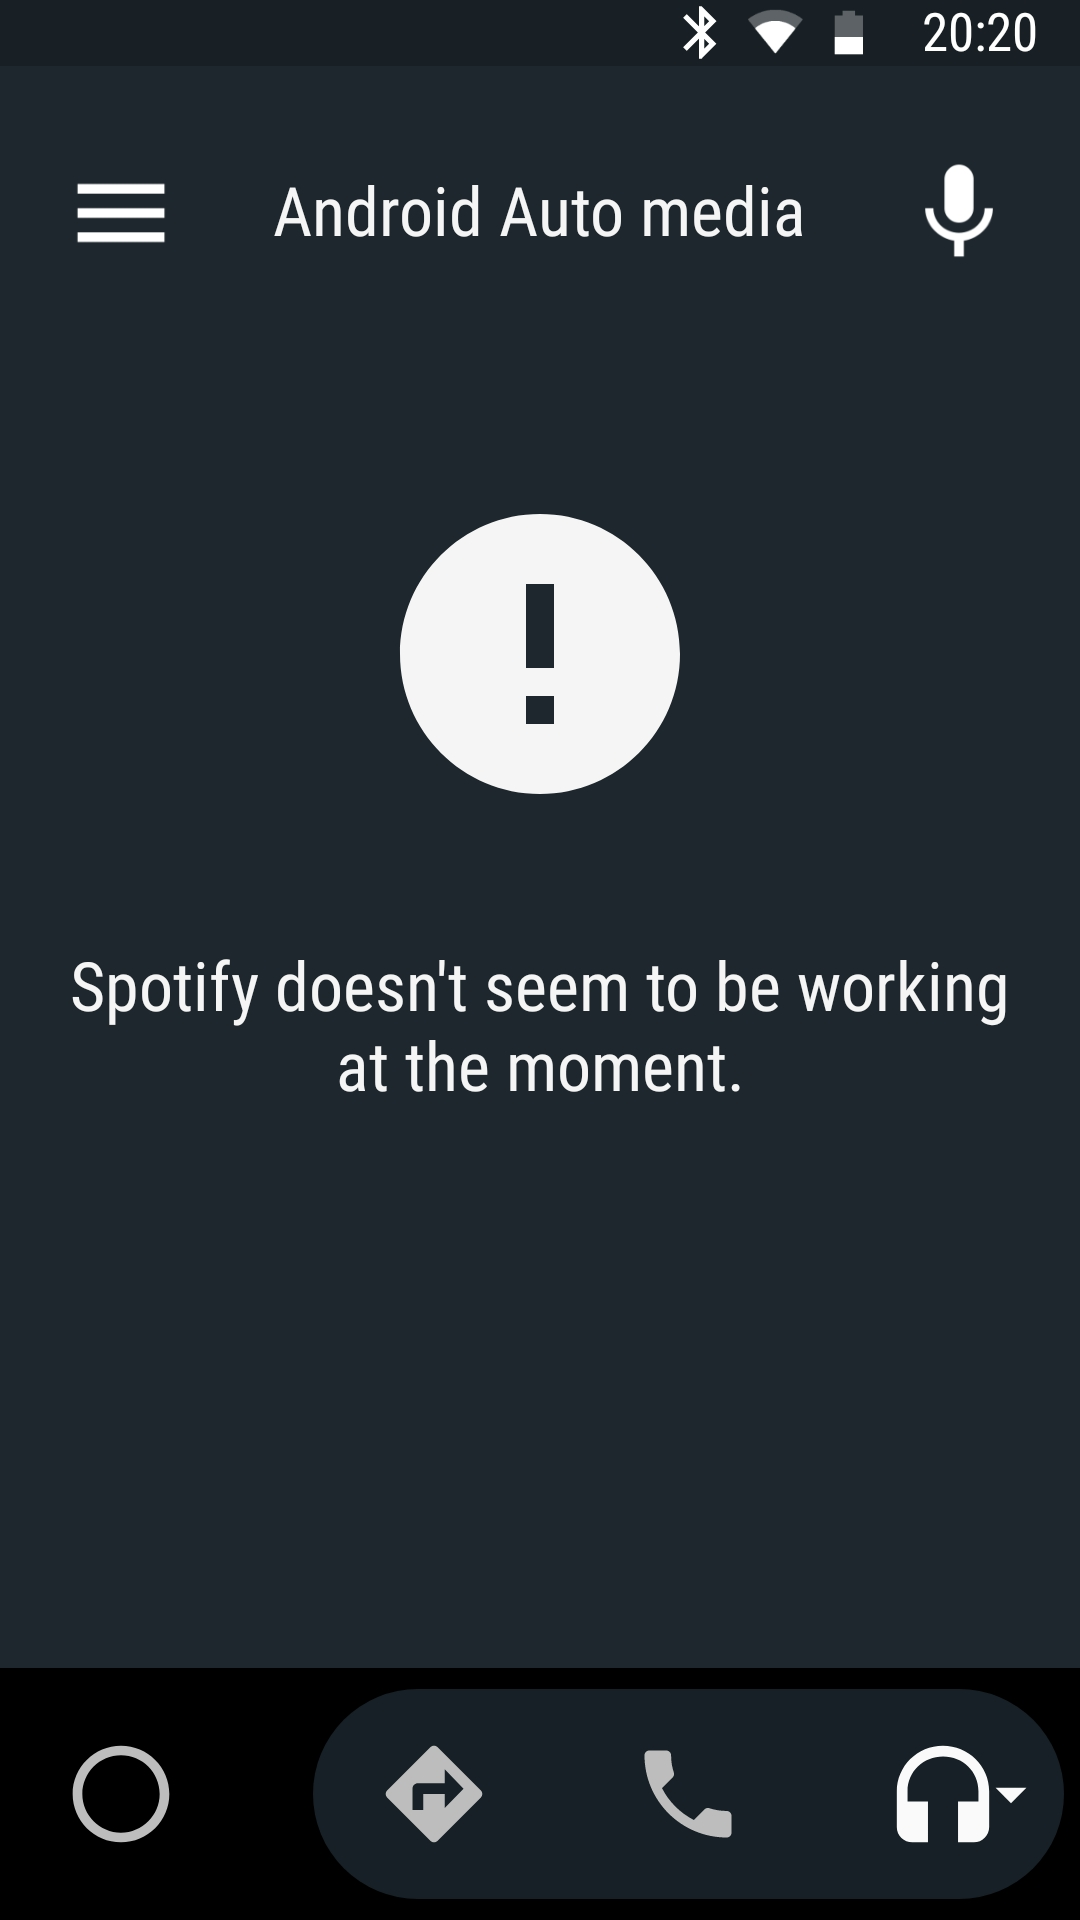 Song plays for 5-10 sec on Spotify then an error message